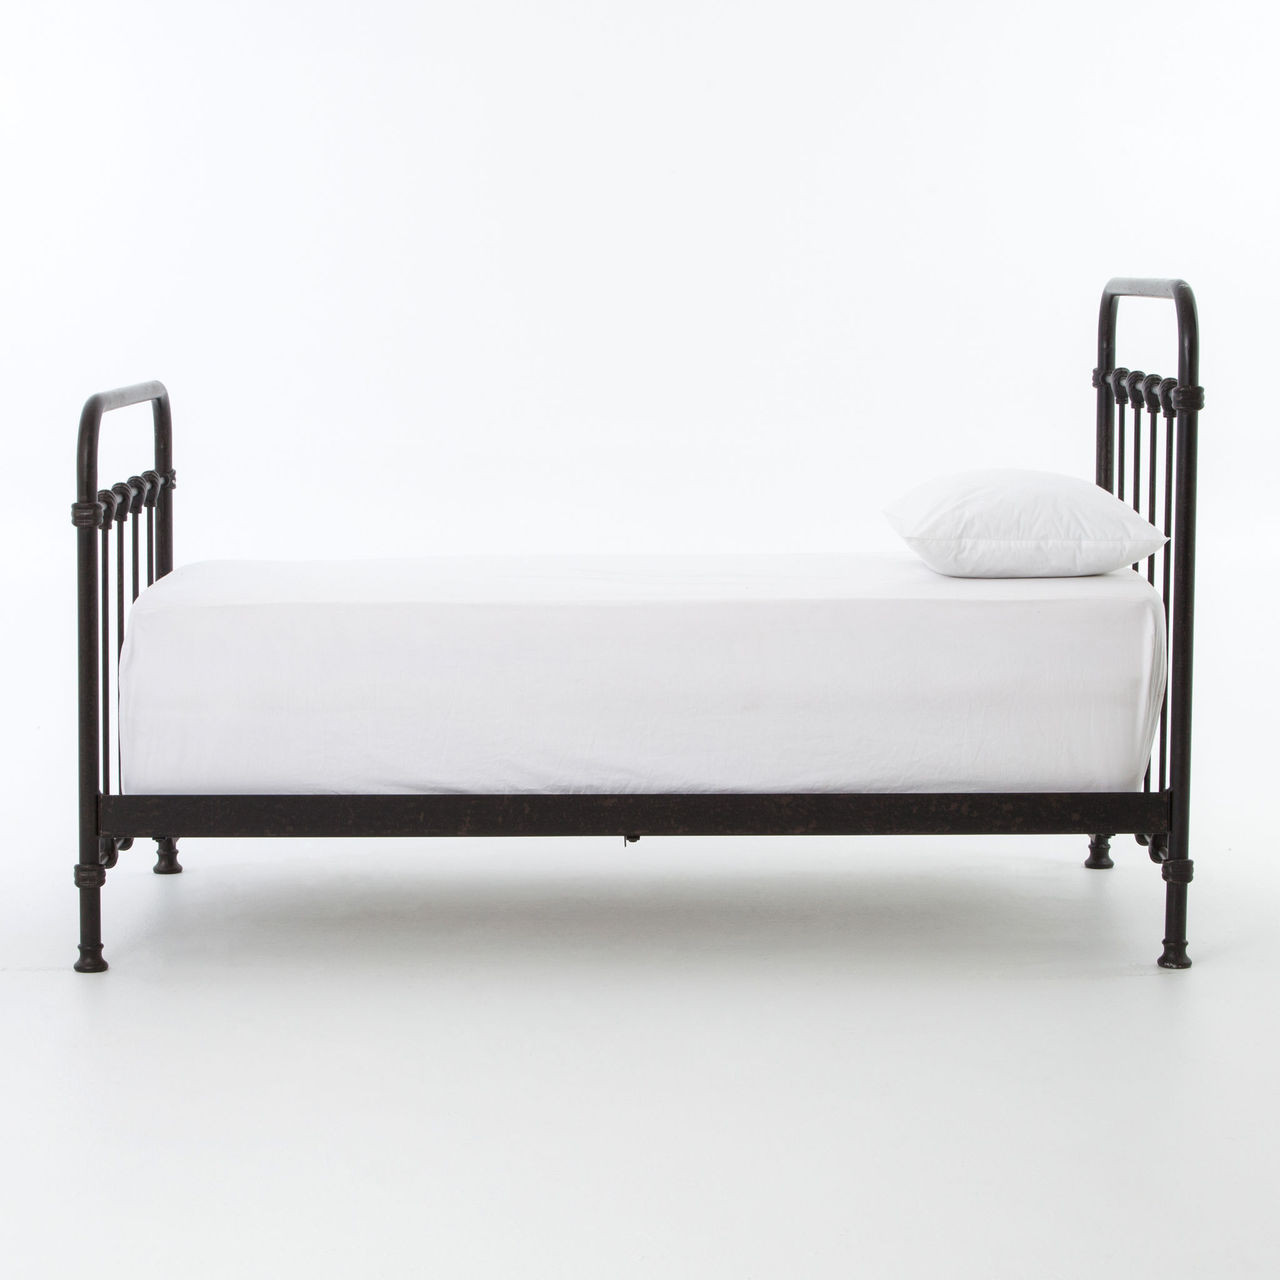 kingsley vintage black metal twin bed frame - Twin Bed And Frame